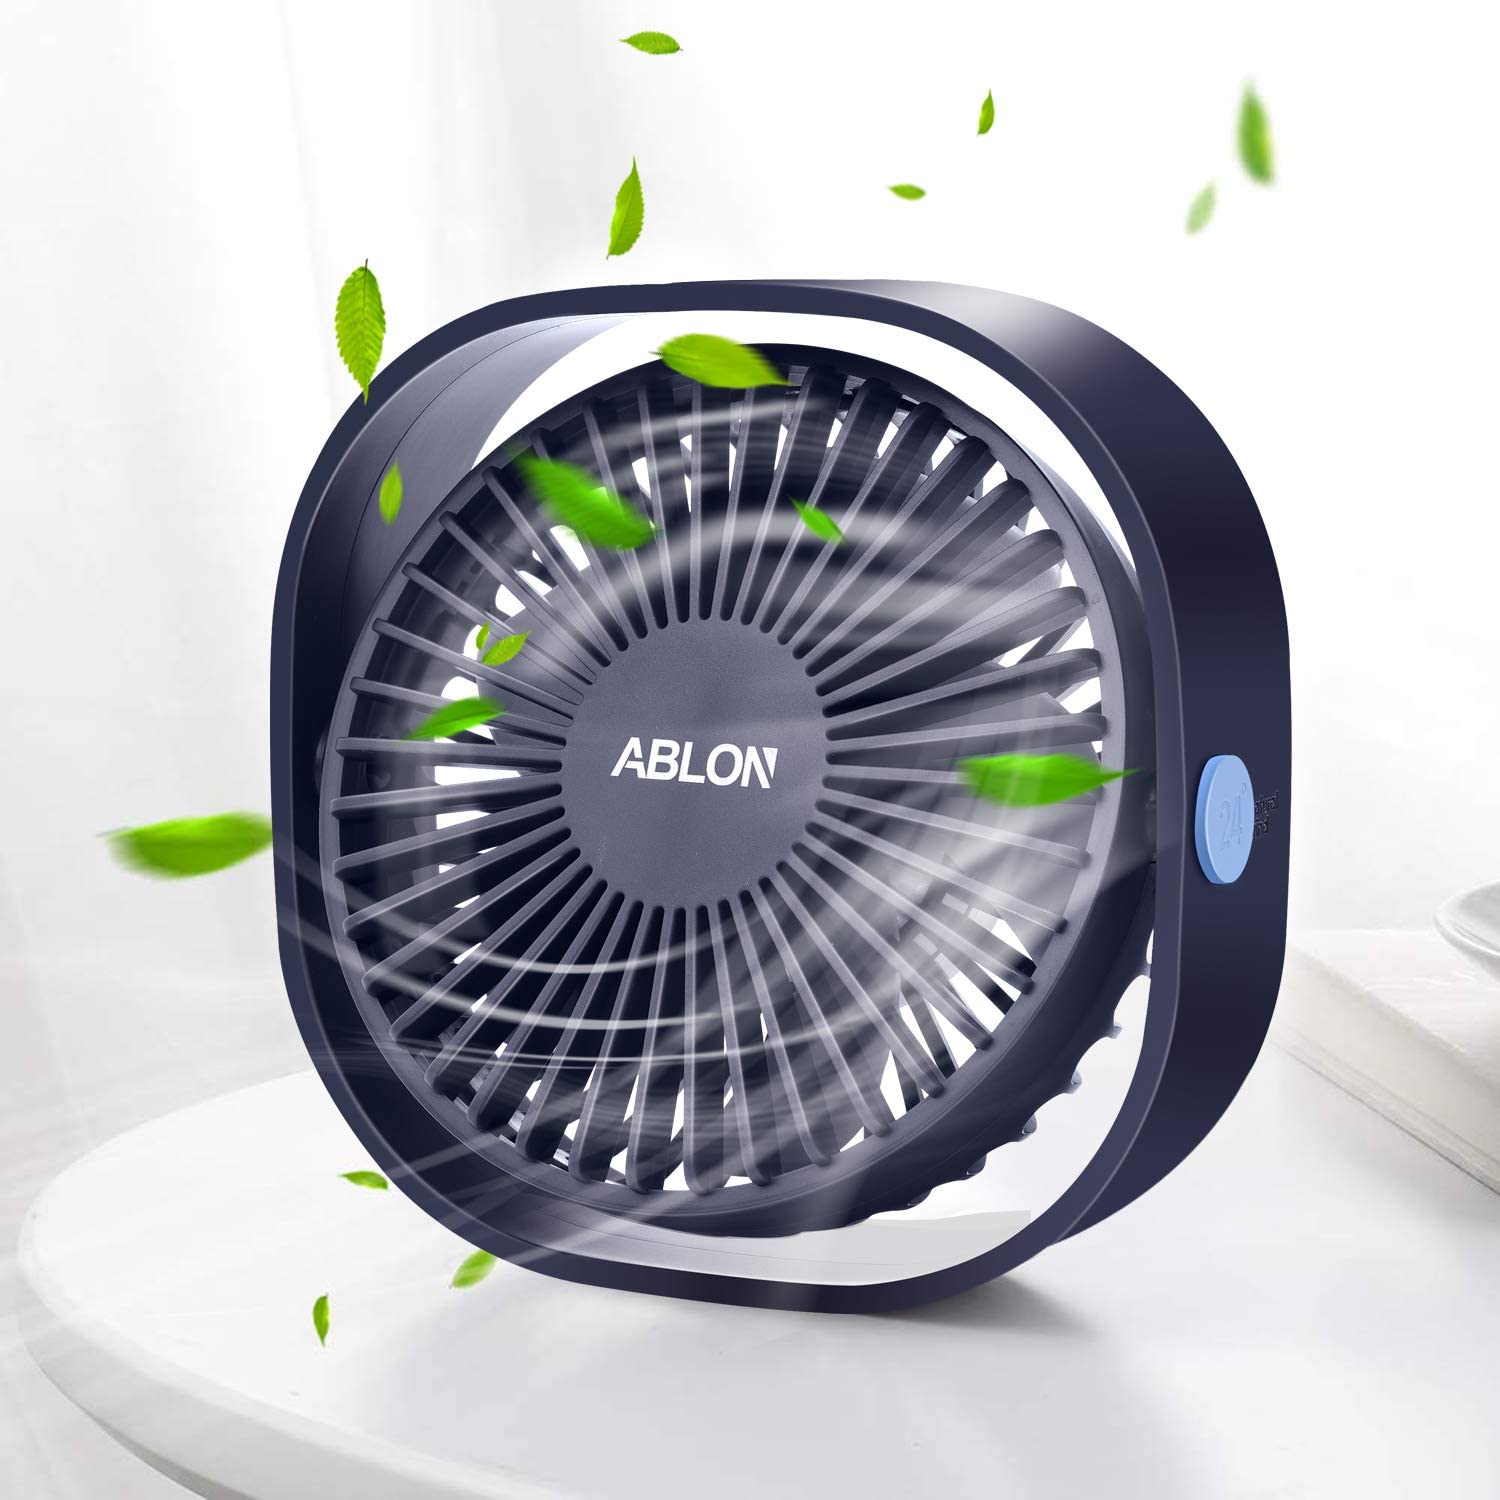 Ablon Desk Fan, Small Table Personal Portable Mini Fan Powered by USB, 3 Speed and Quiet Design for Office, Home,Outdoor Travel Navy Blue